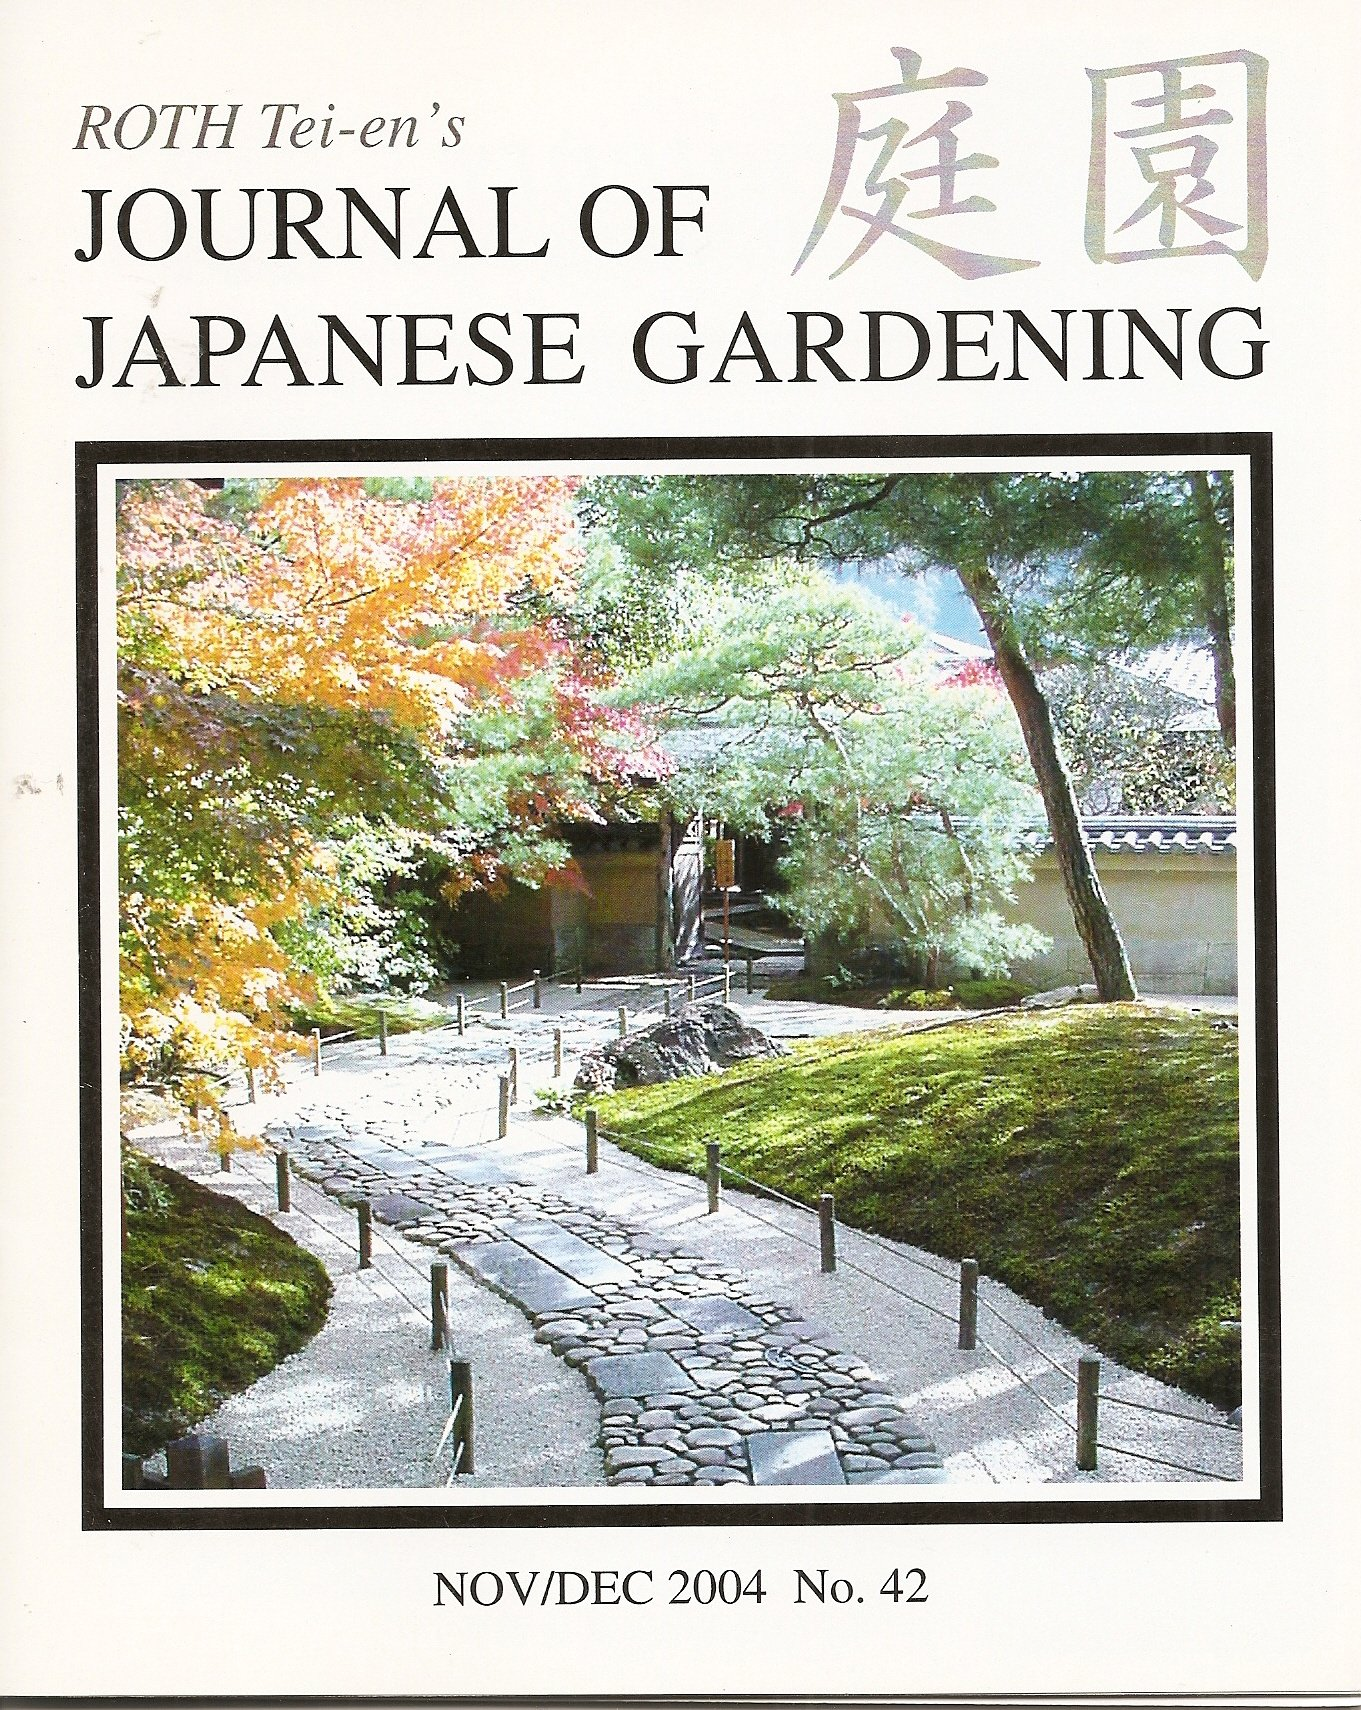 Roth Tei-en's Journal of Japanese Gardening: Signs in Public Japanese Gardens; Sukiya Living Data; Basic Pruning - Bushwacking Where to Start; Paths - Nobedan Soil Levels; Gyokudo Art Museum; Shiosai Project Is Big News; Red Maples of Tsuten Bridge (No. 42 Nov./Dec. 2004)